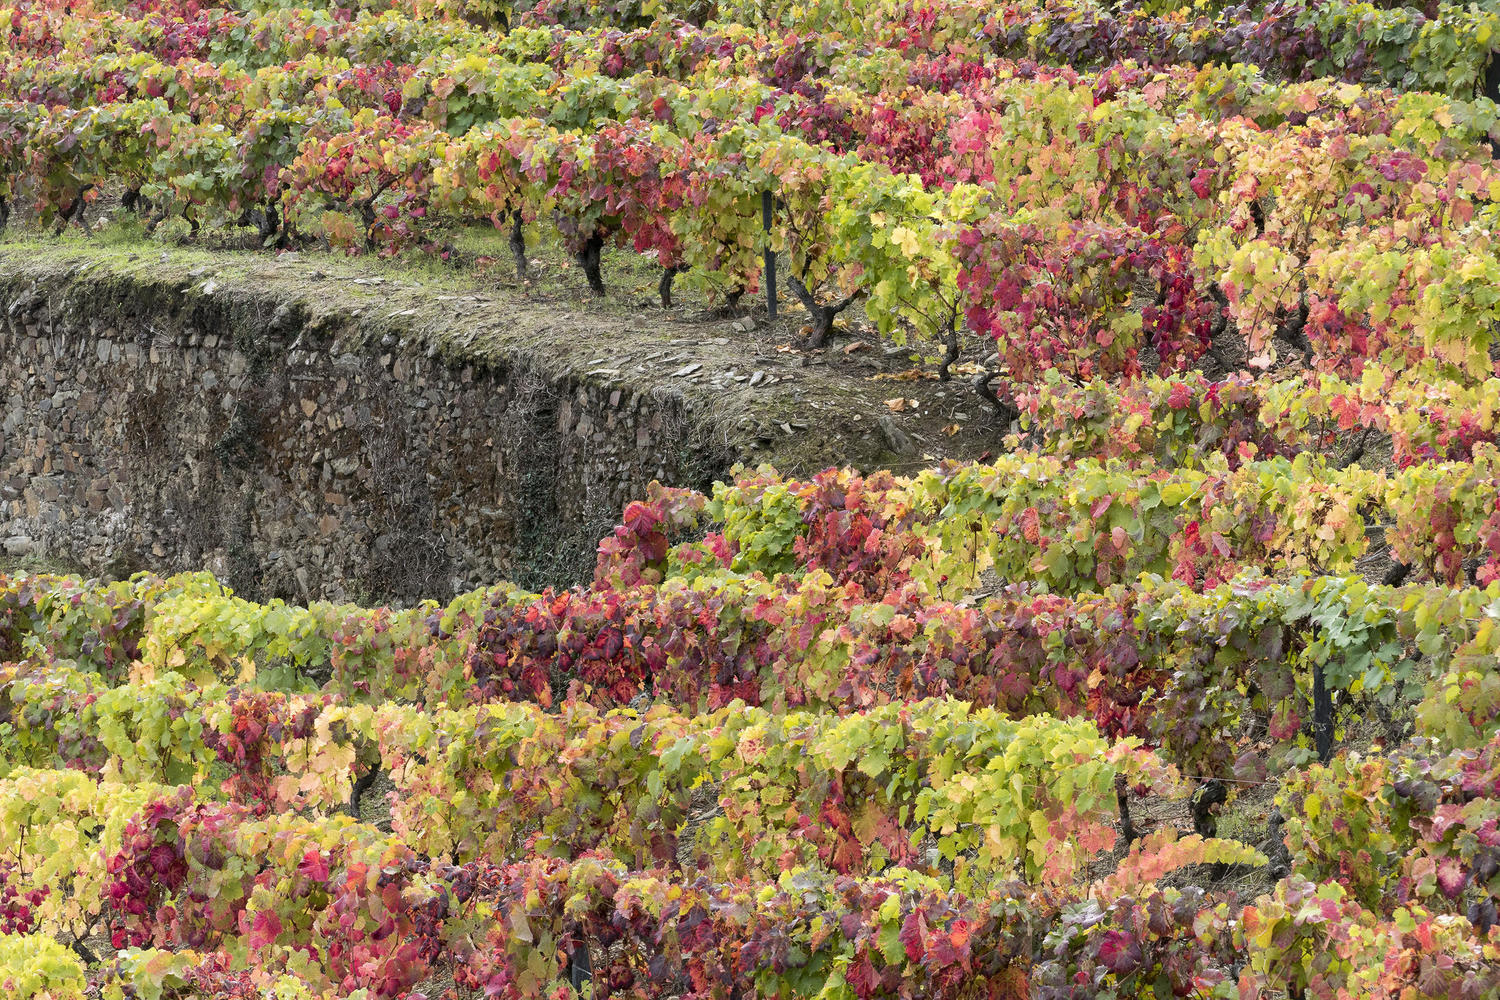 Autumn colours in the terraced vineyards of the Douro